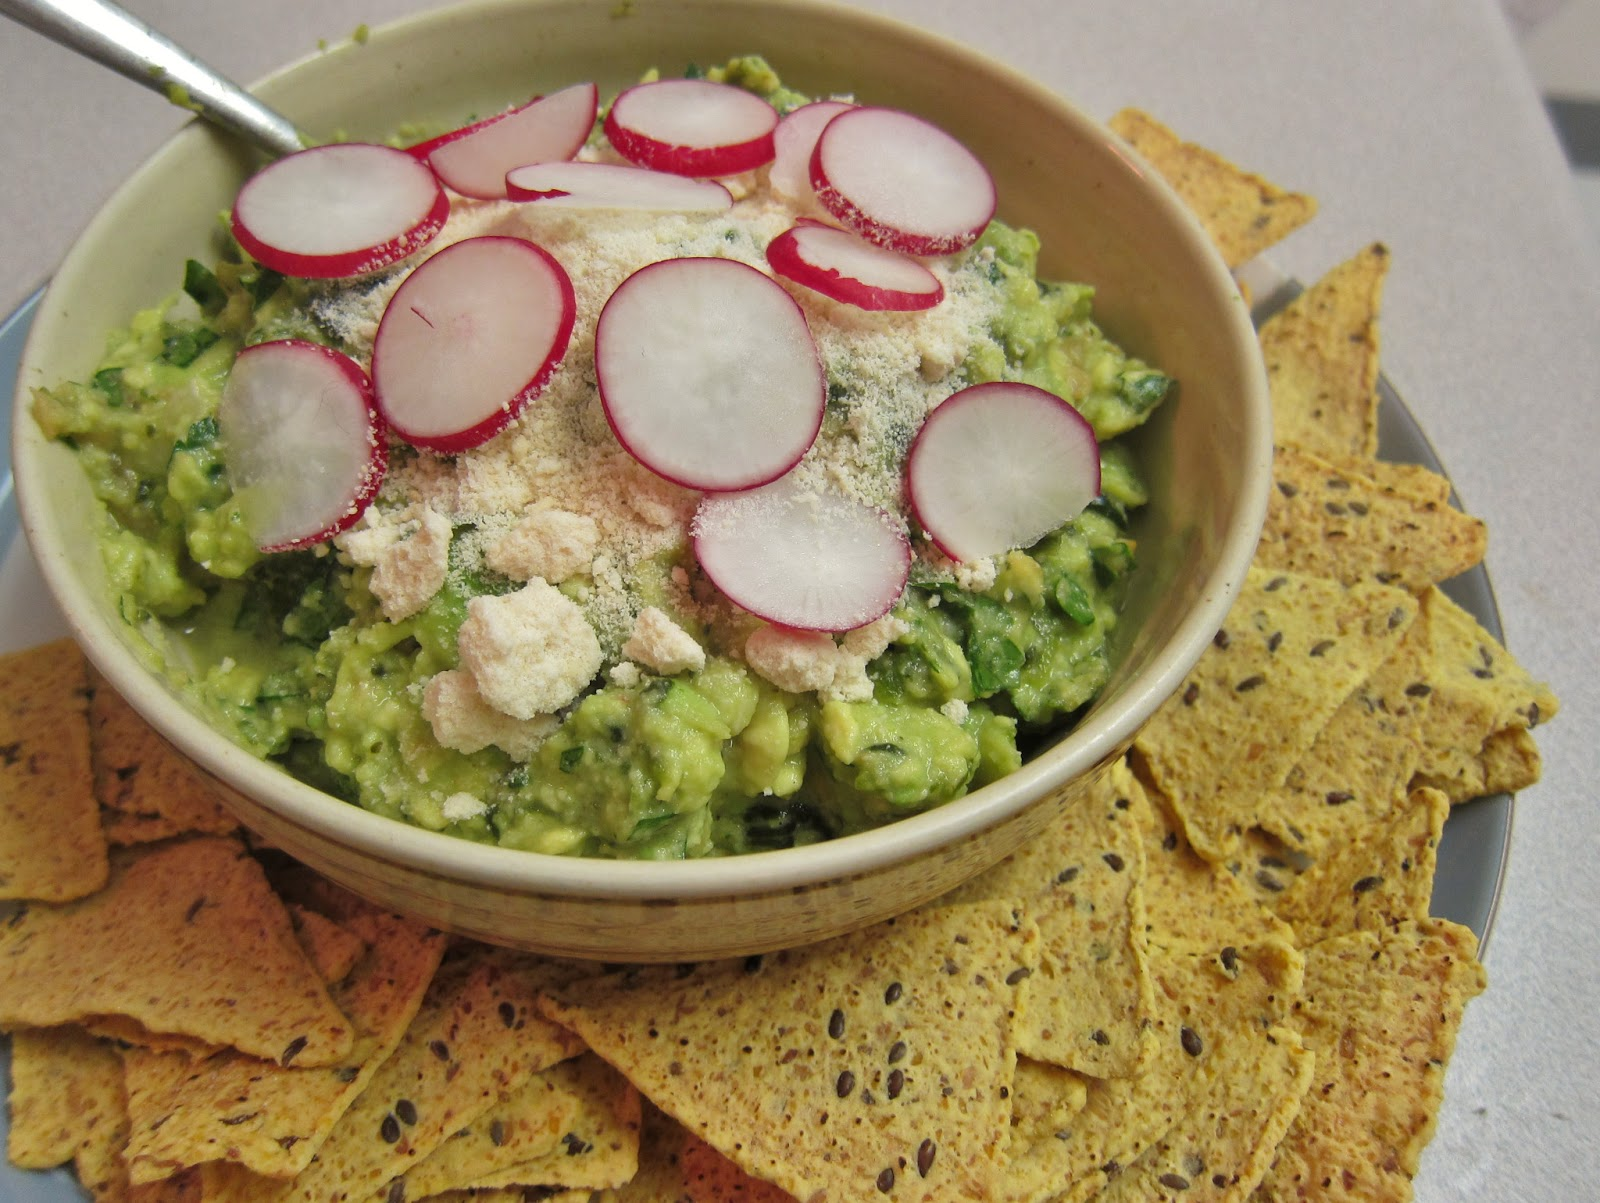 The Vegan Chronicle: Roasted-Poblano Guacamole with Garlic and Parsley